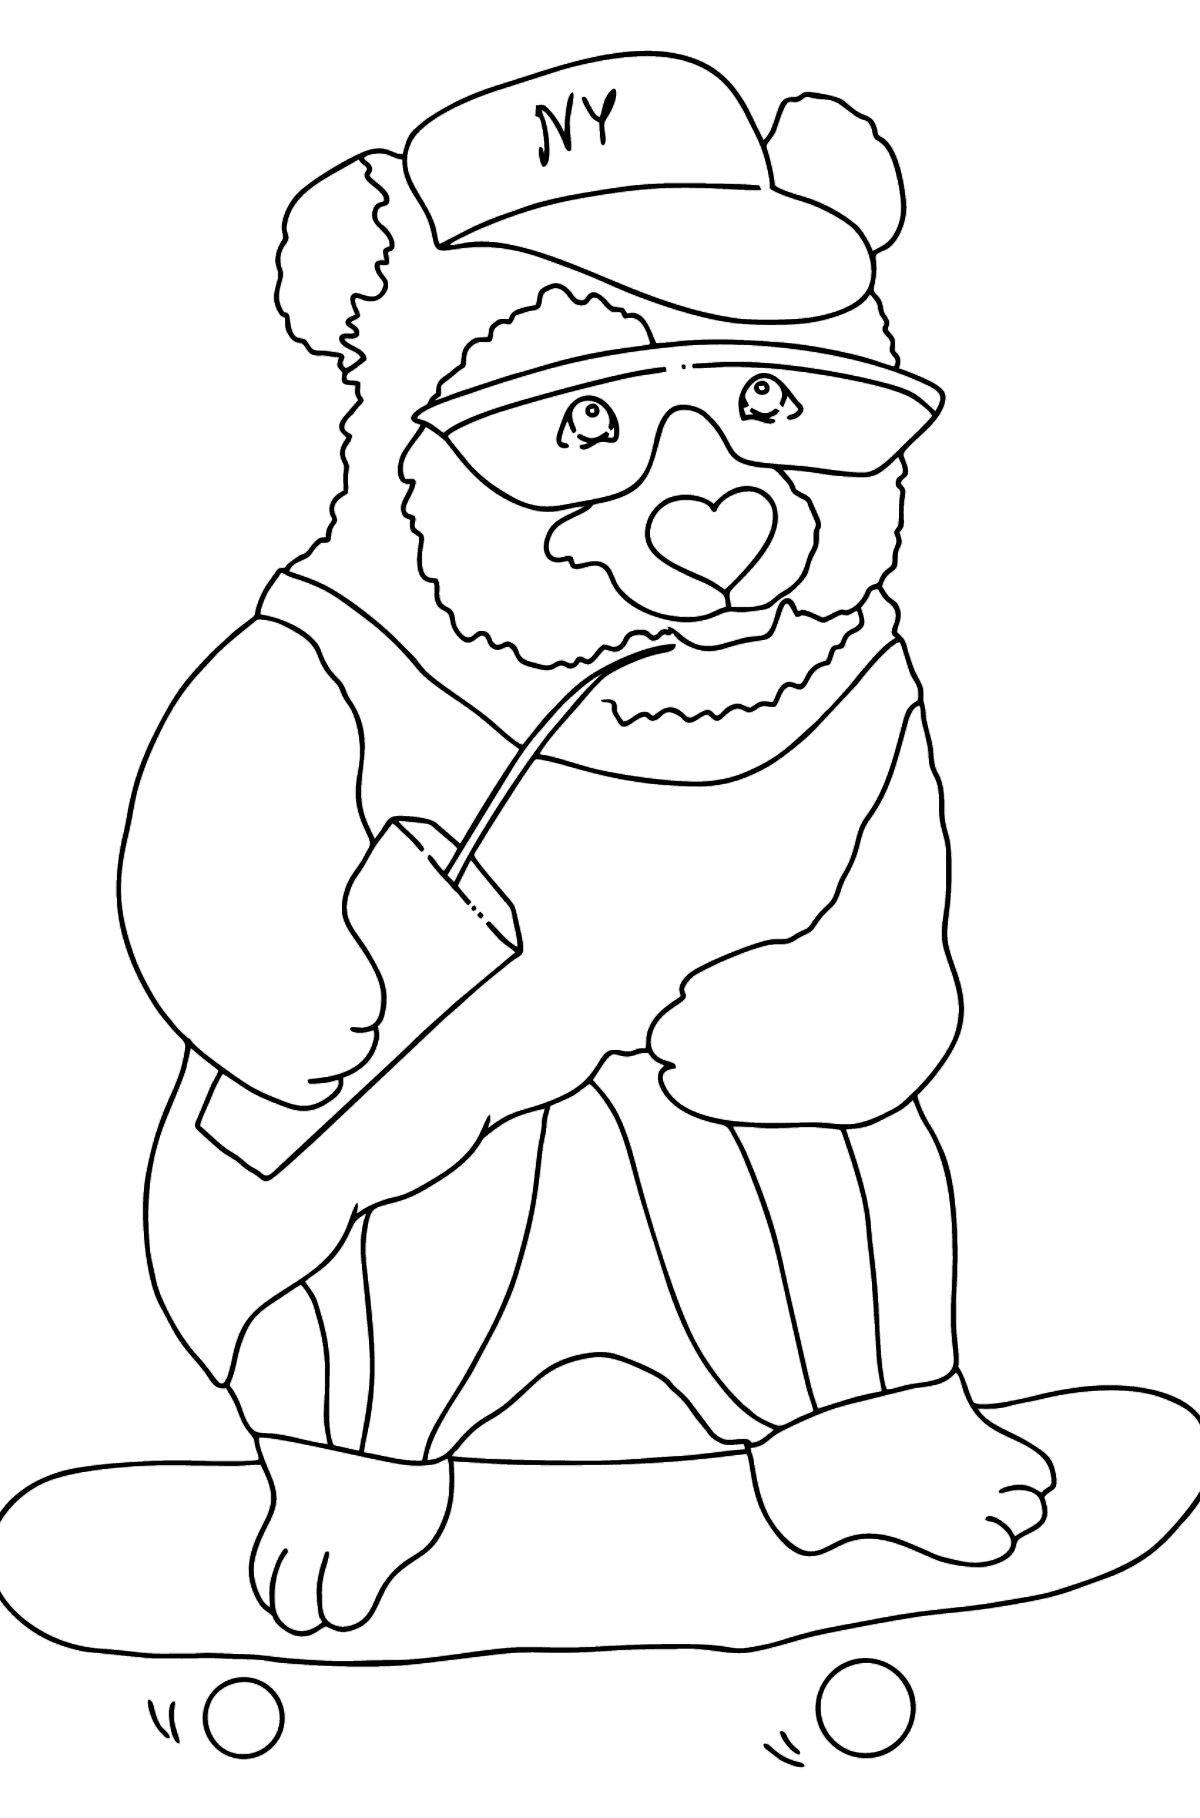 Coloring Page - A Panda is Learning to Ride a Skateboard - Coloring Pages for Kids